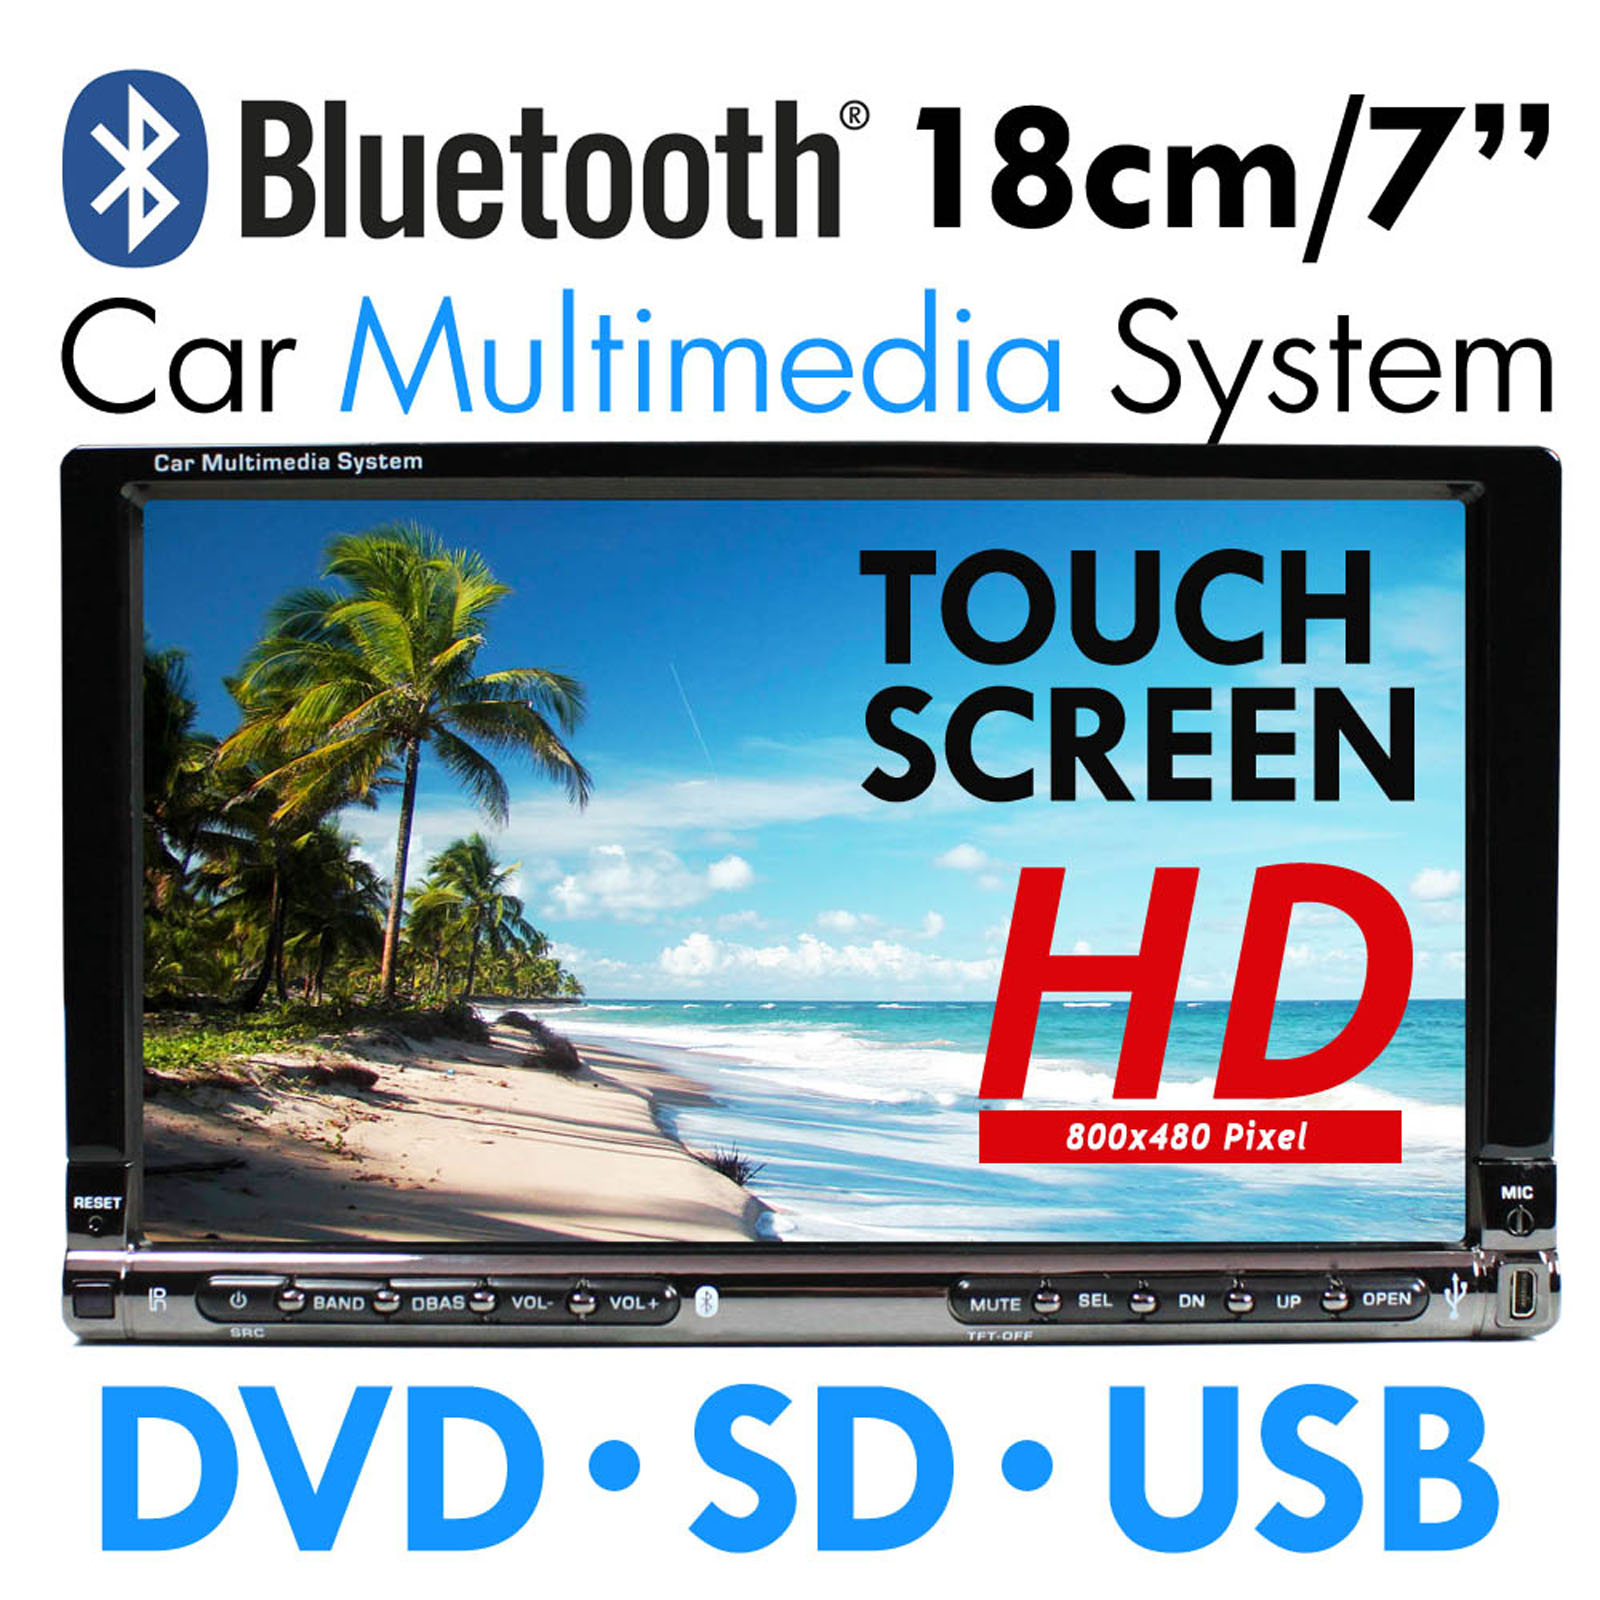 AUTORADIO-BLUETOOTH-7-18cm-TOUCHSCREEN-USB-SD-MP3-2DIN-DOPPEL-DIN-MONICEIVER